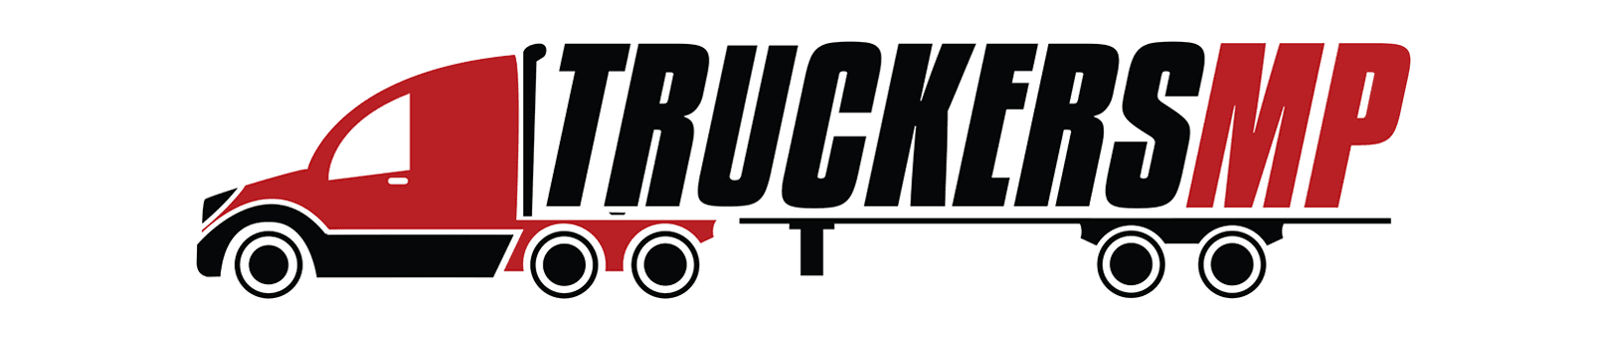 truckersmp-logo-black